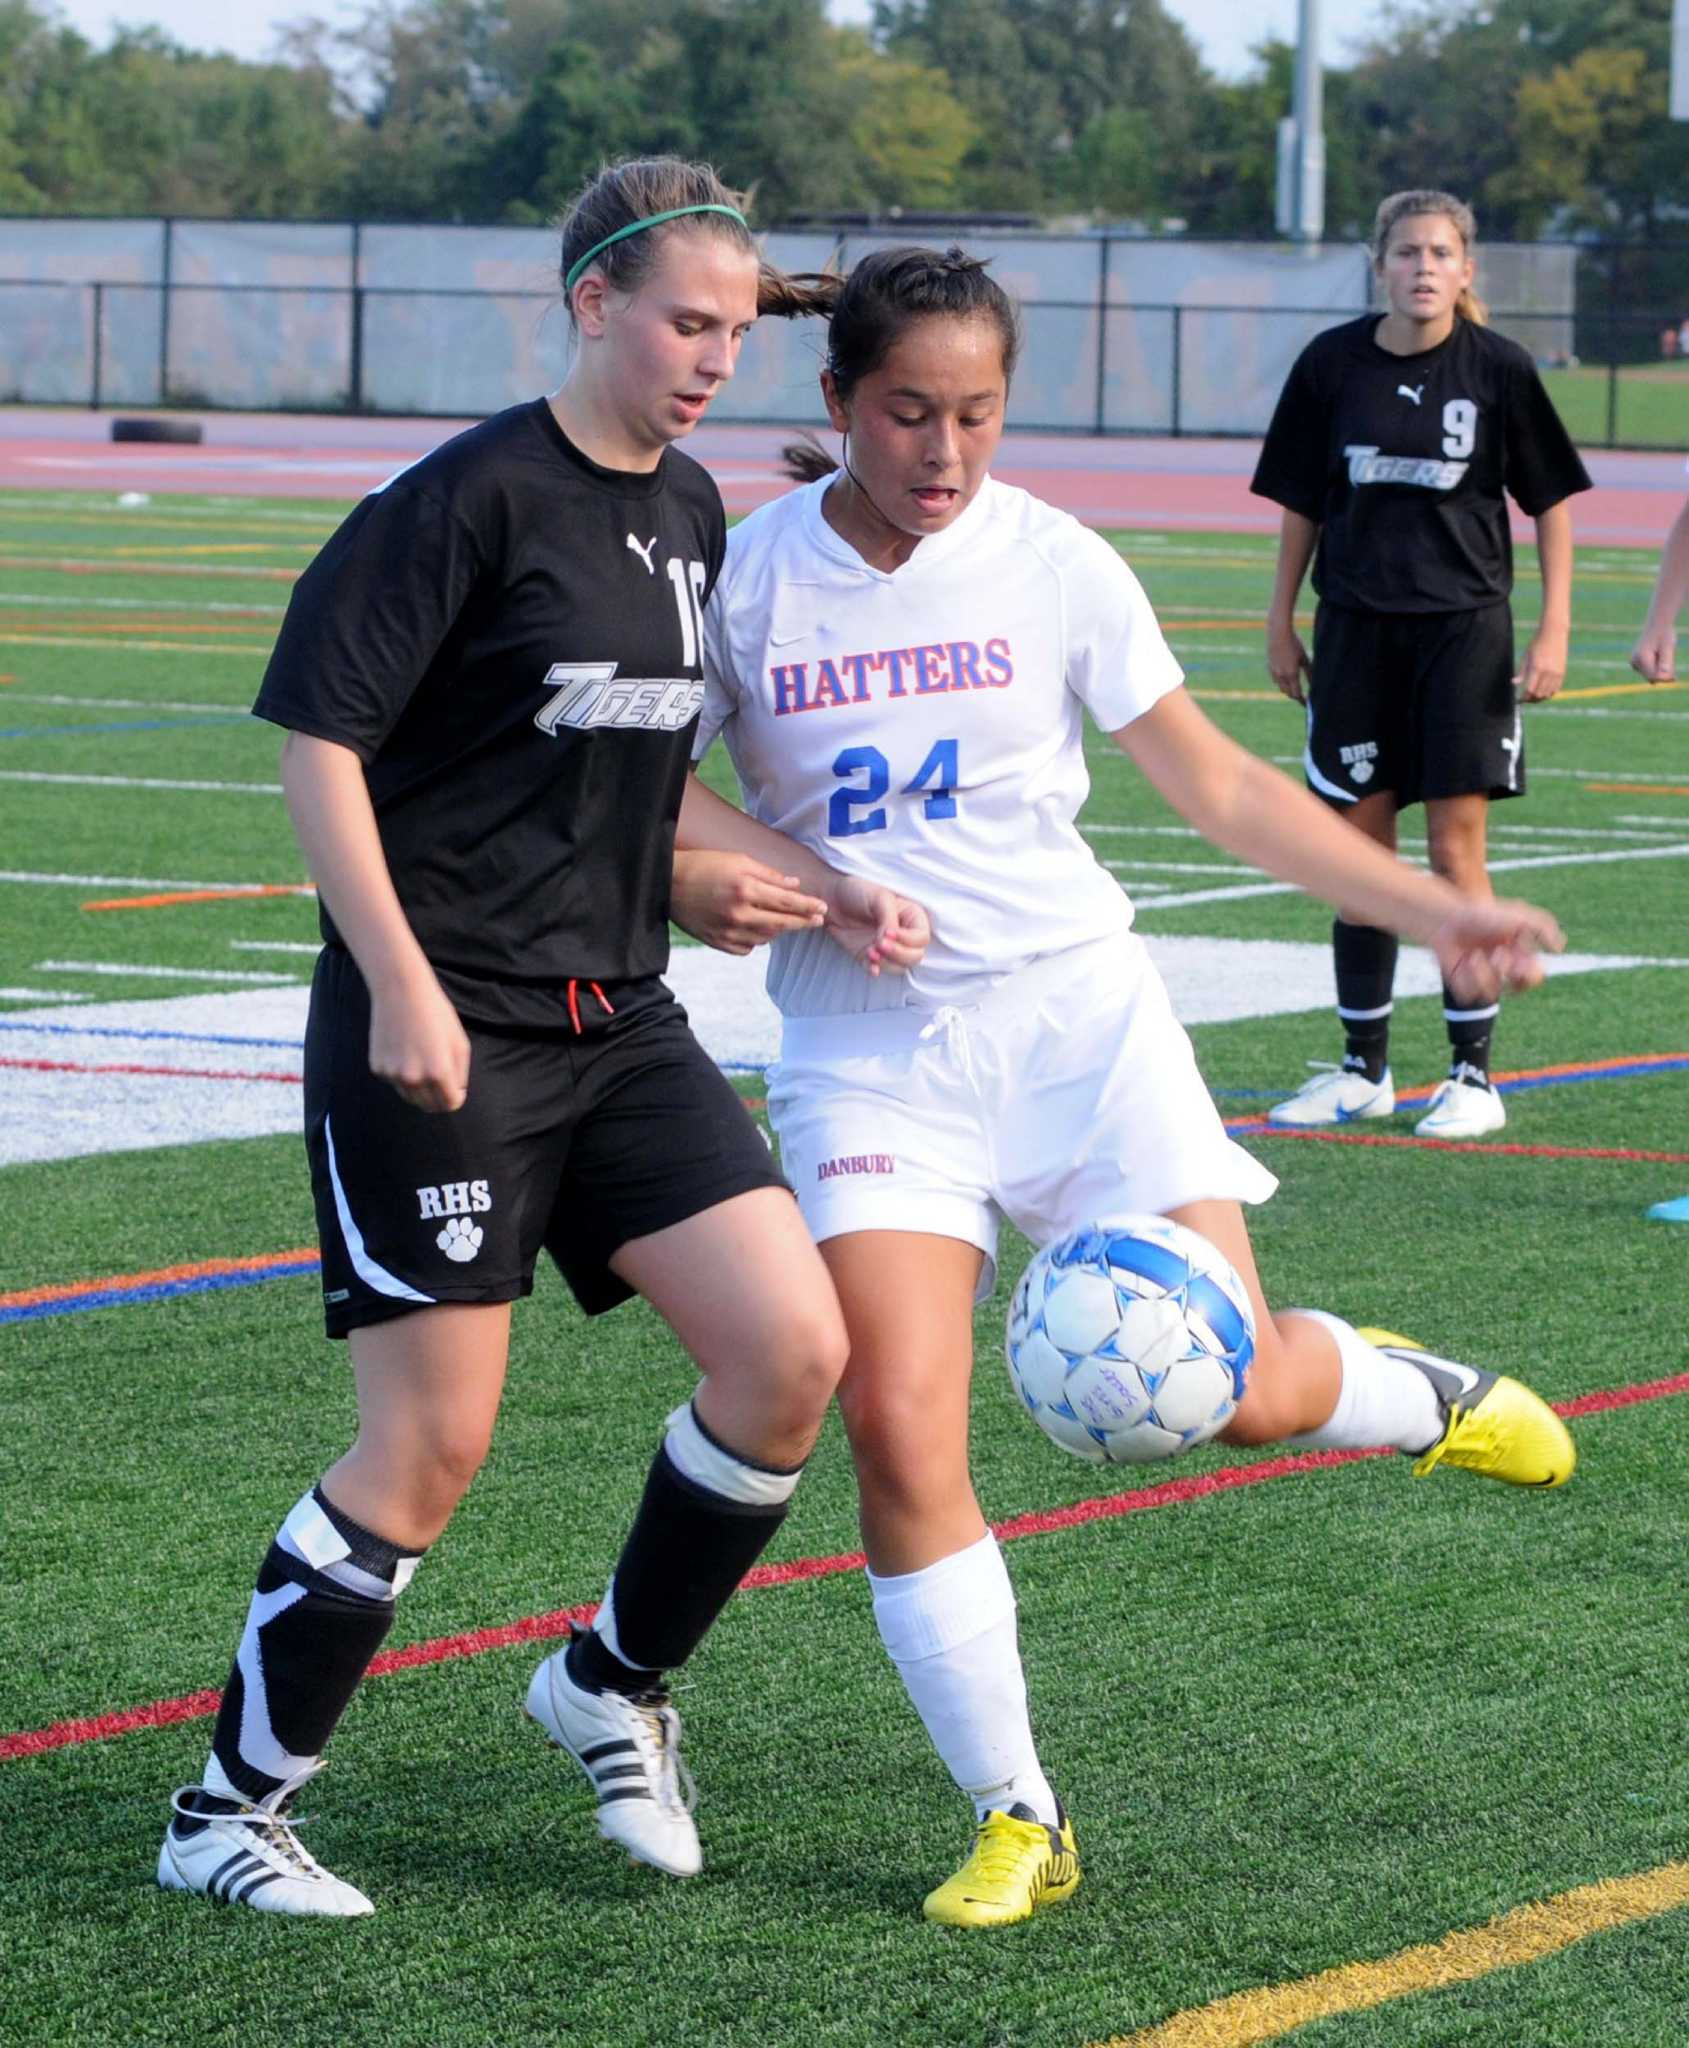 The Biggest Non Local Football Rivalries Including: Ridgefield Girls Soccer Team Tops Danbury In Rivalry Clash